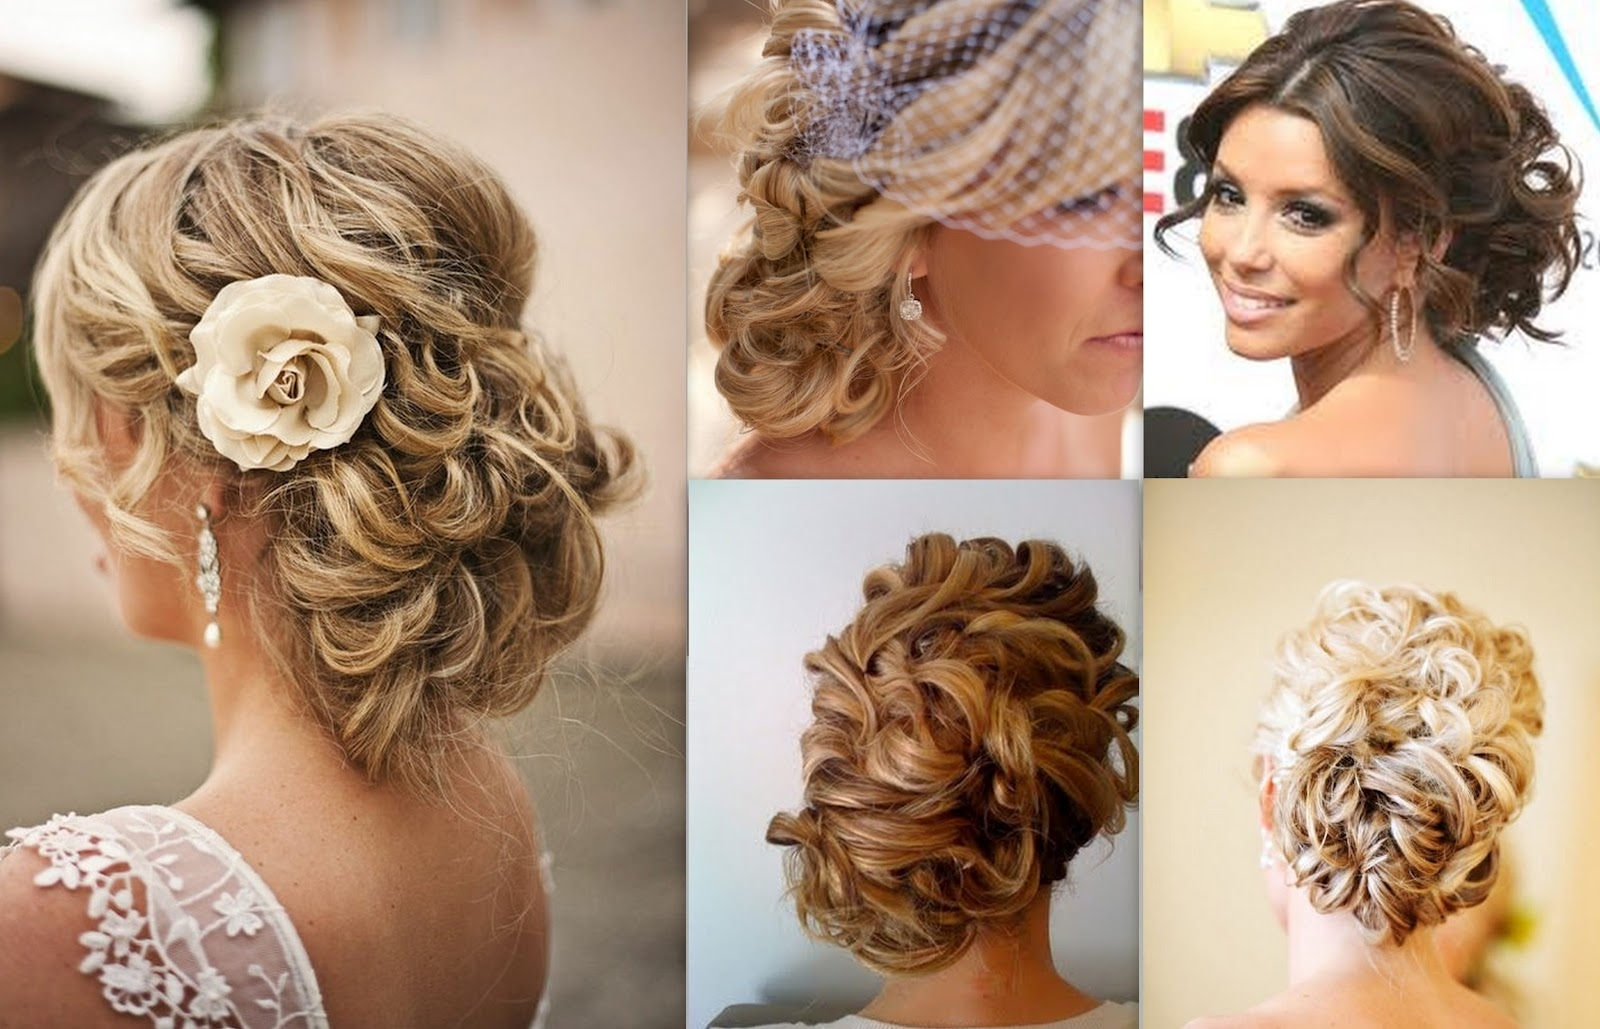 Wedding Hairstyles Curls To The Side | Best Wedding Hairs For Wedding Updo Hairstyles With Veil (View 7 of 15)